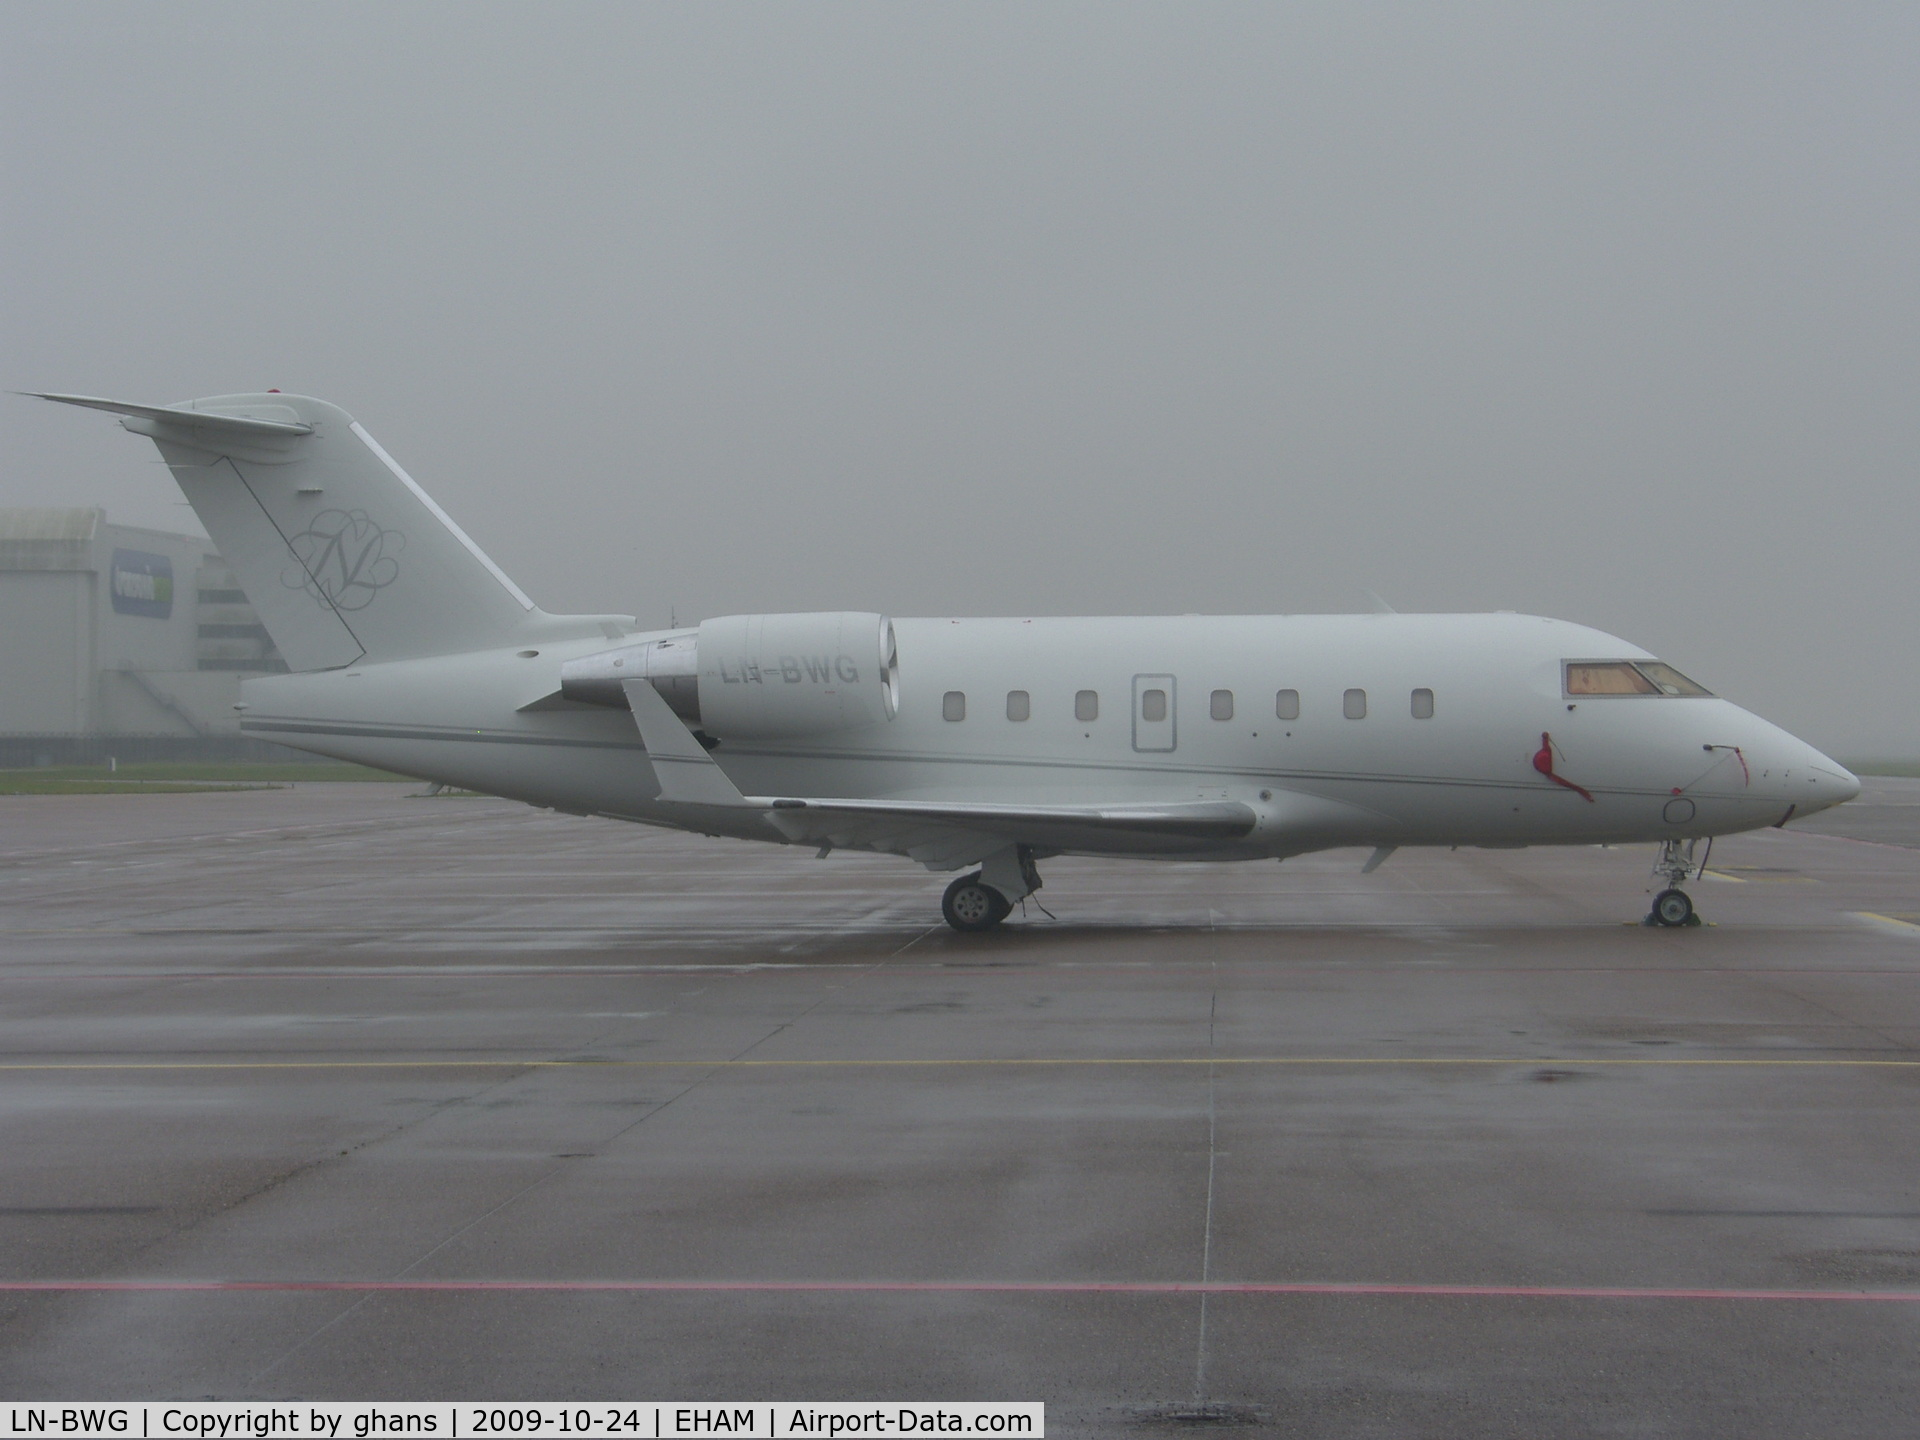 LN-BWG, 1997 Canadair Challenger 604 (CL-600-2B16) C/N 5328, On a foggy day